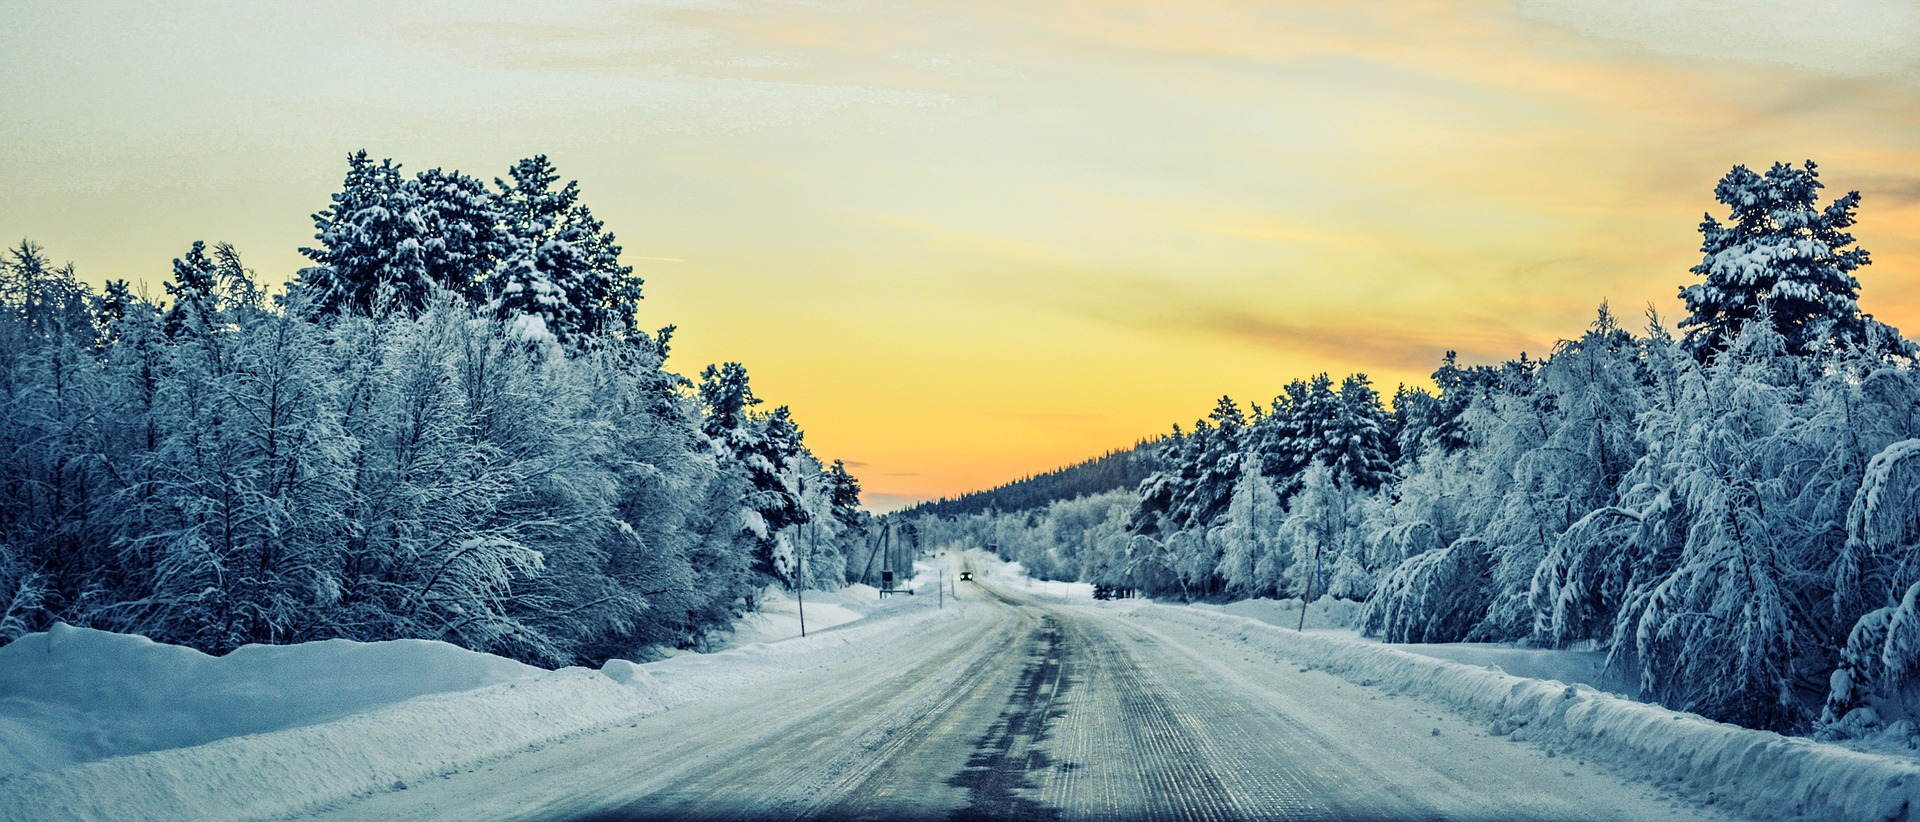 winter-2771736_1920 17 Winter Driving Tips For Snow, Ice and Floods